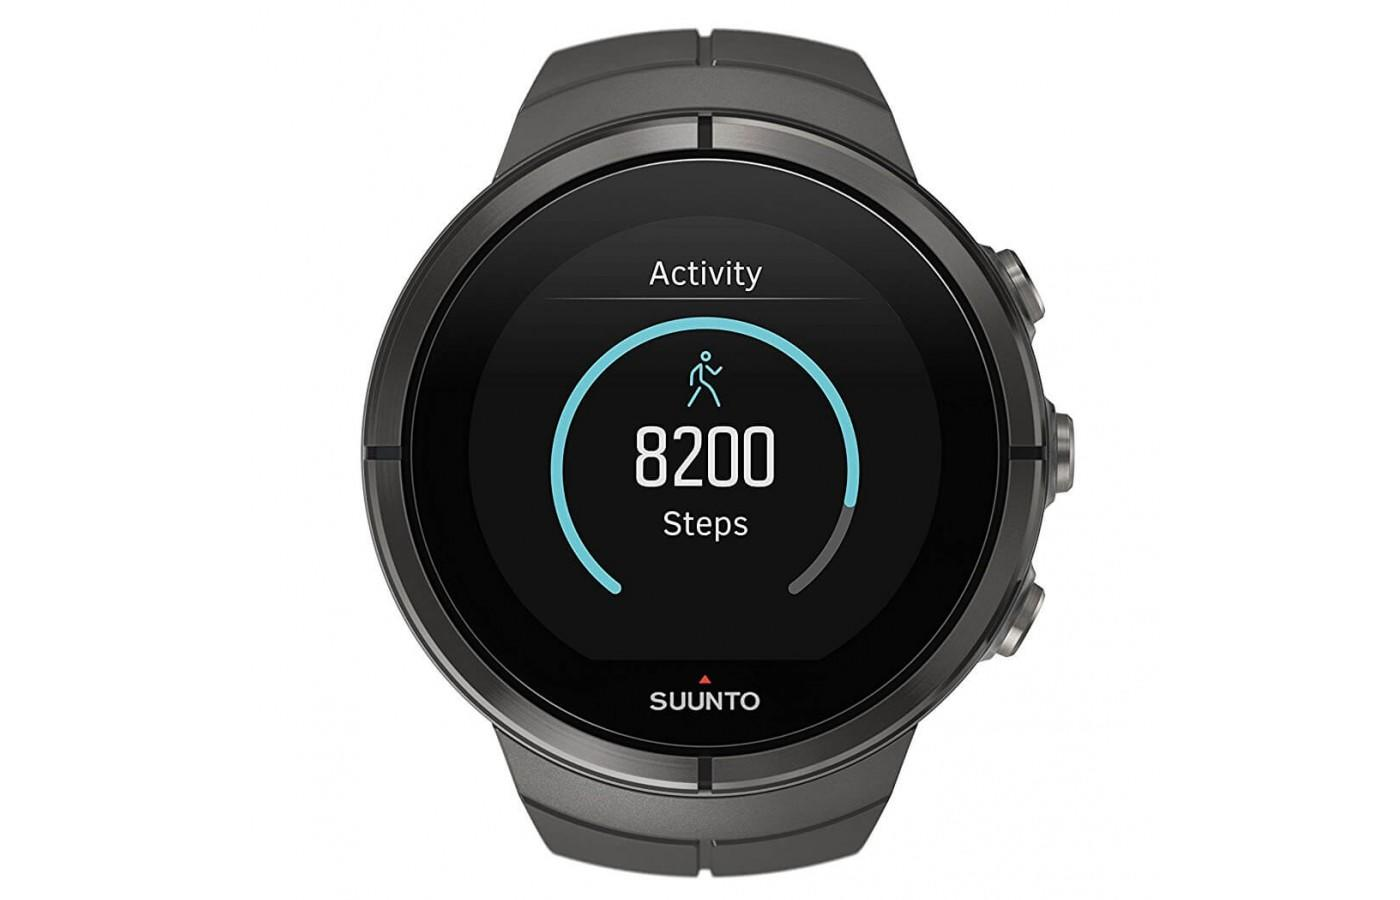 The Suunto Spartan Ultra has a number of versatile features